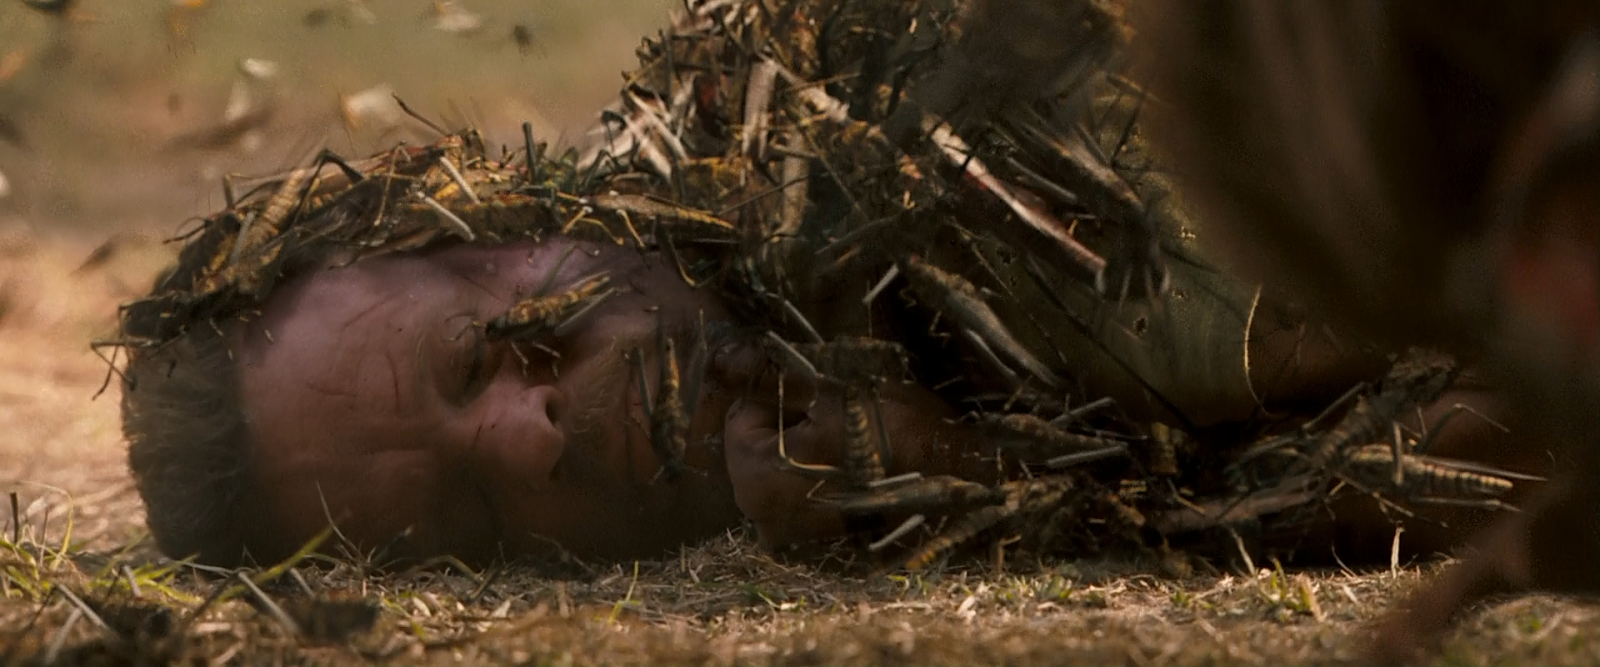 reaping the 2007 movie pic3